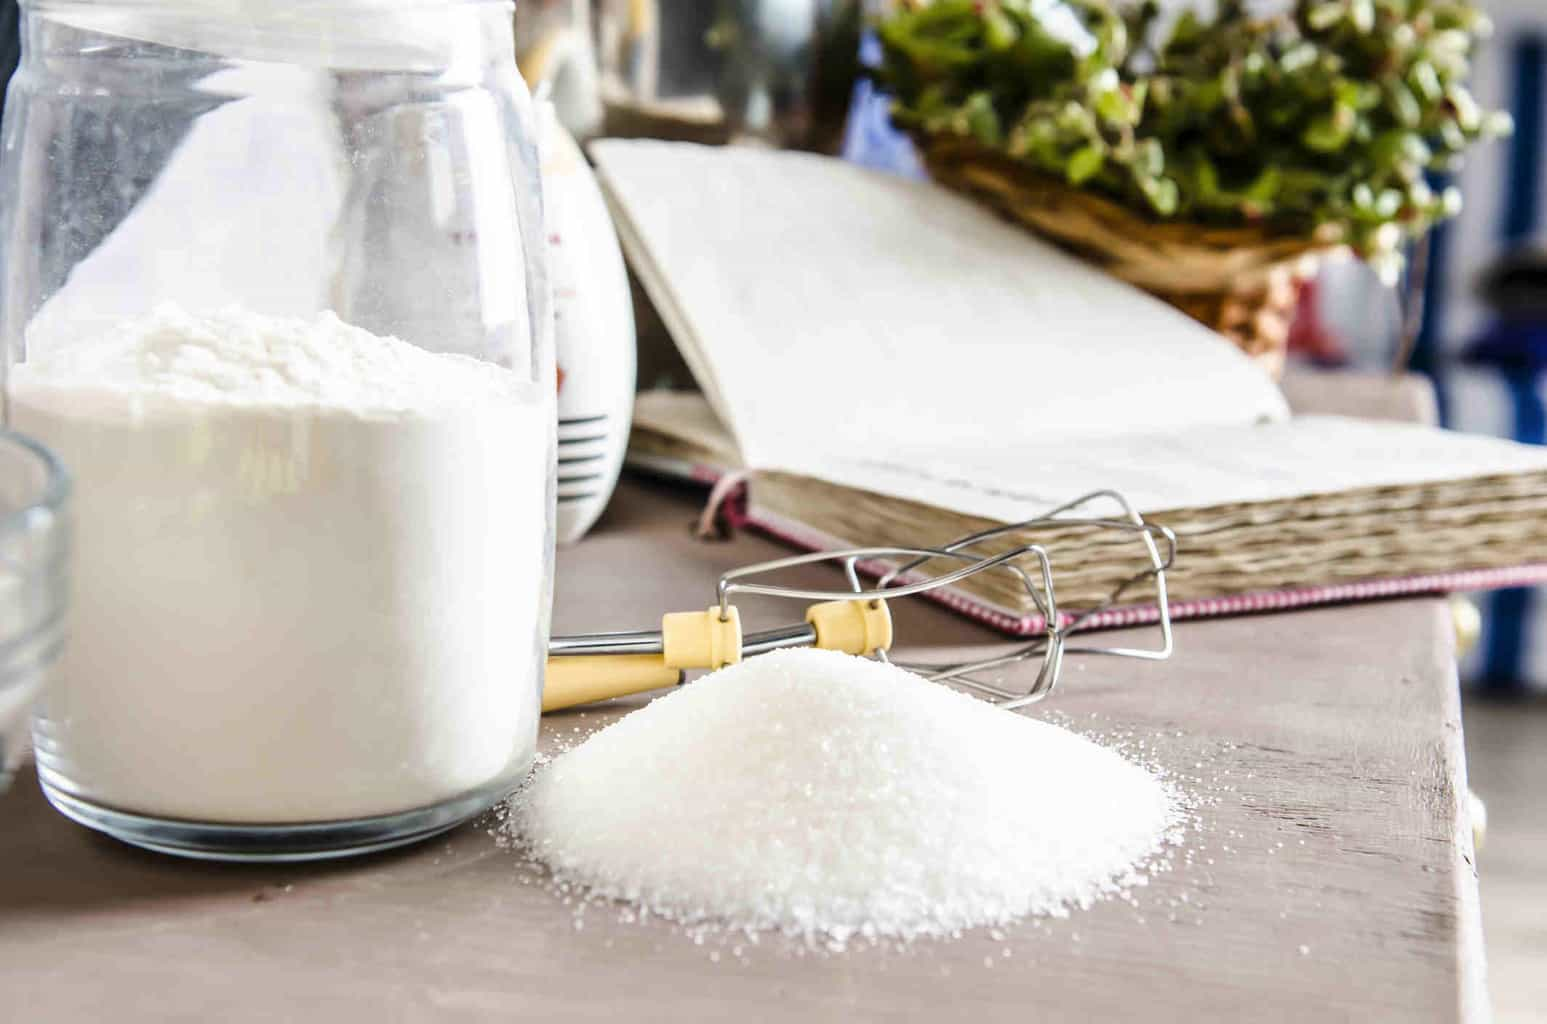 Proof that white sugar and white flour are healthier for you